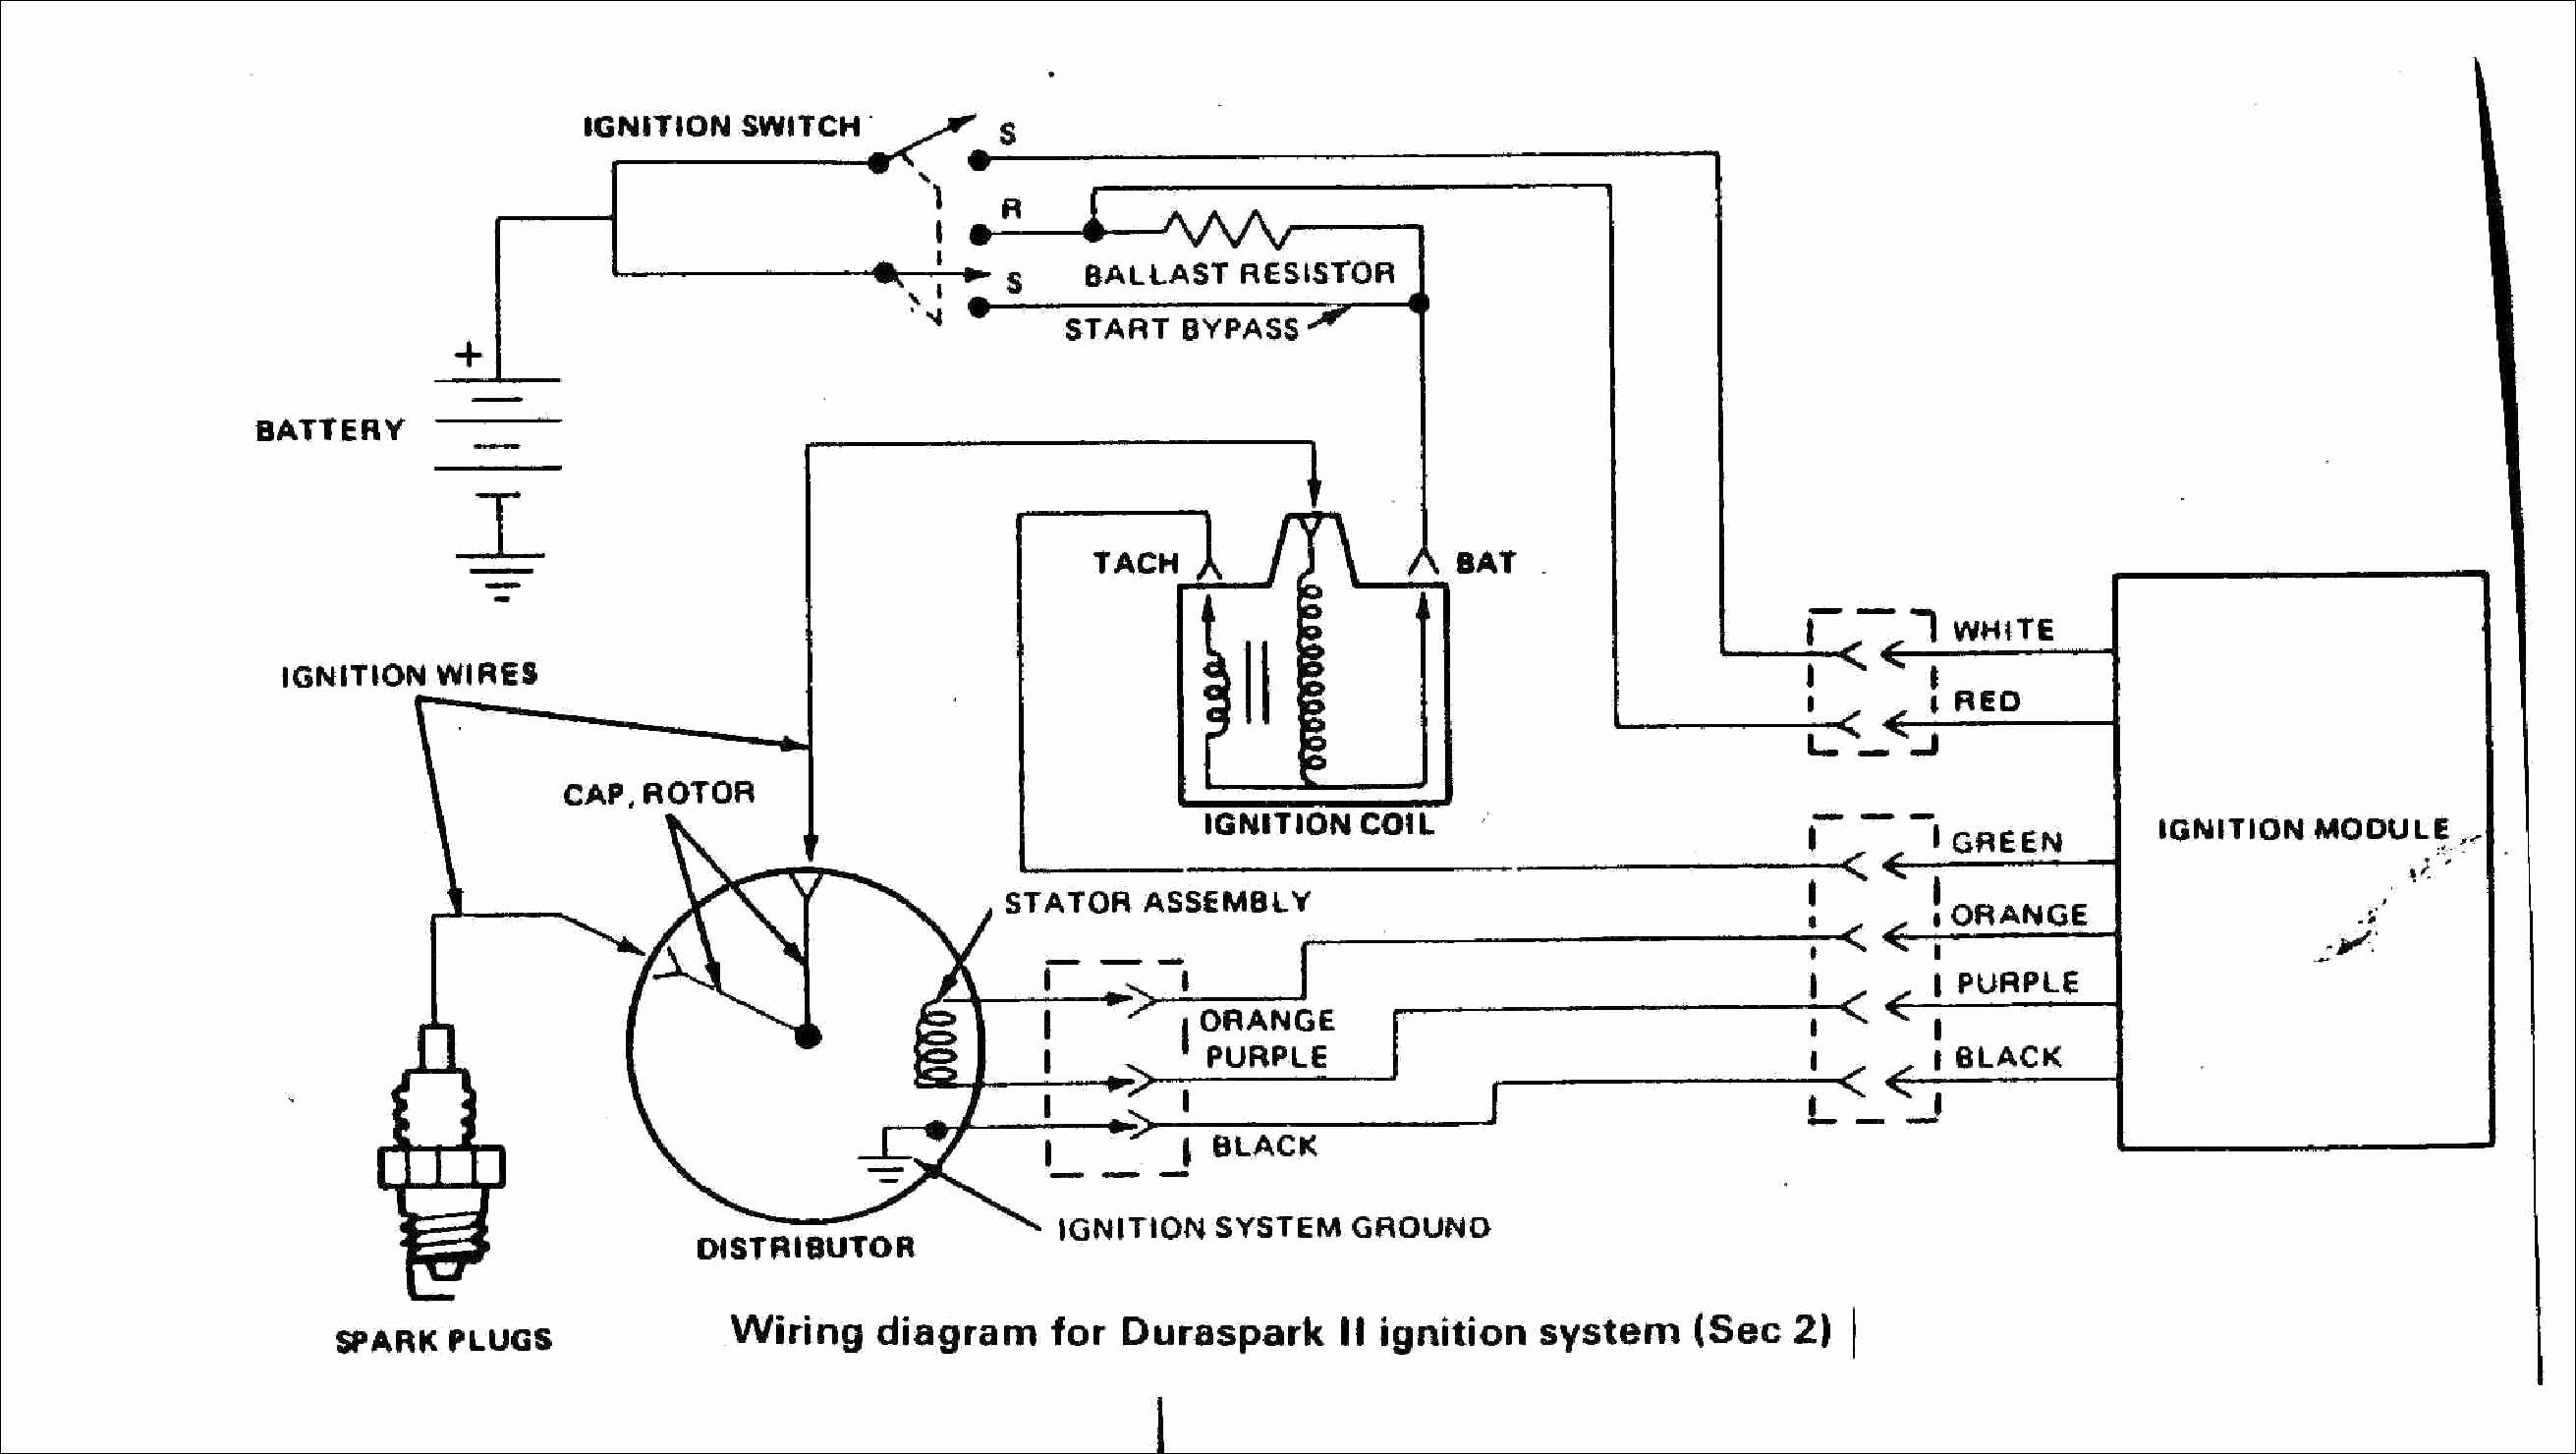 3 wire fan switch diagram 3 wire ignition switch diagram